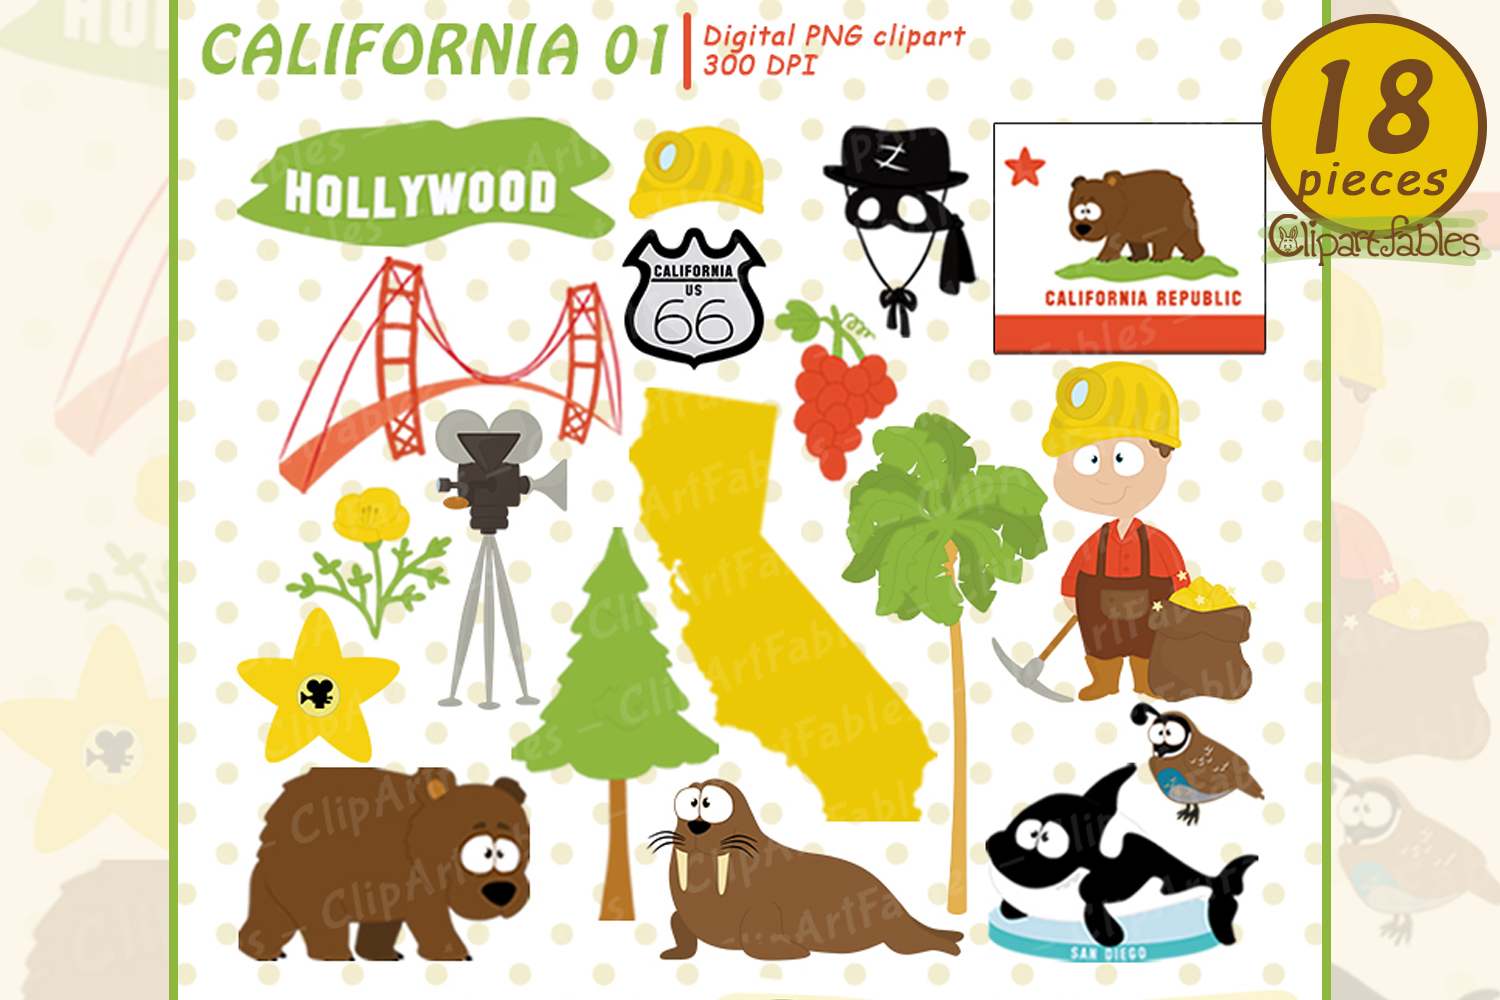 CALIFORNIA State clipart, Cute California bear - INSTANT art example image 1